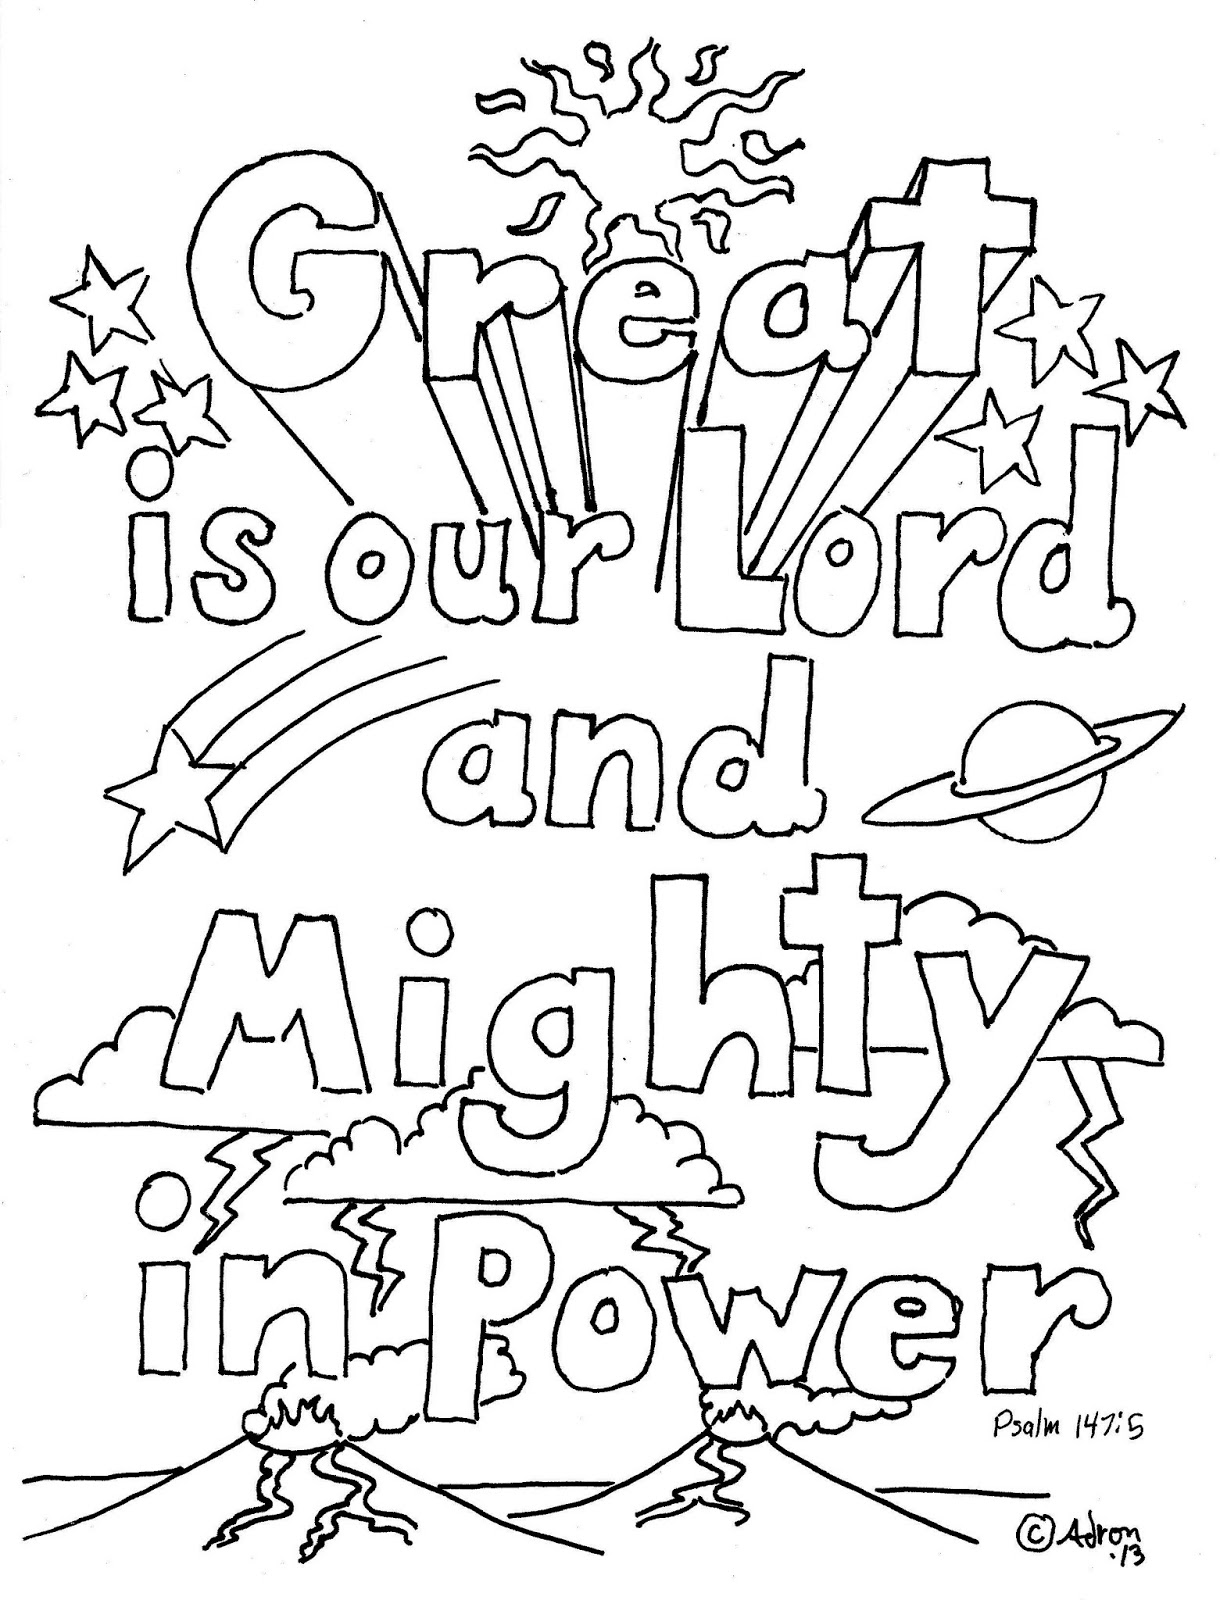 psalms coloring pages bible coloring pages psalms books of the bible pages coloring psalms